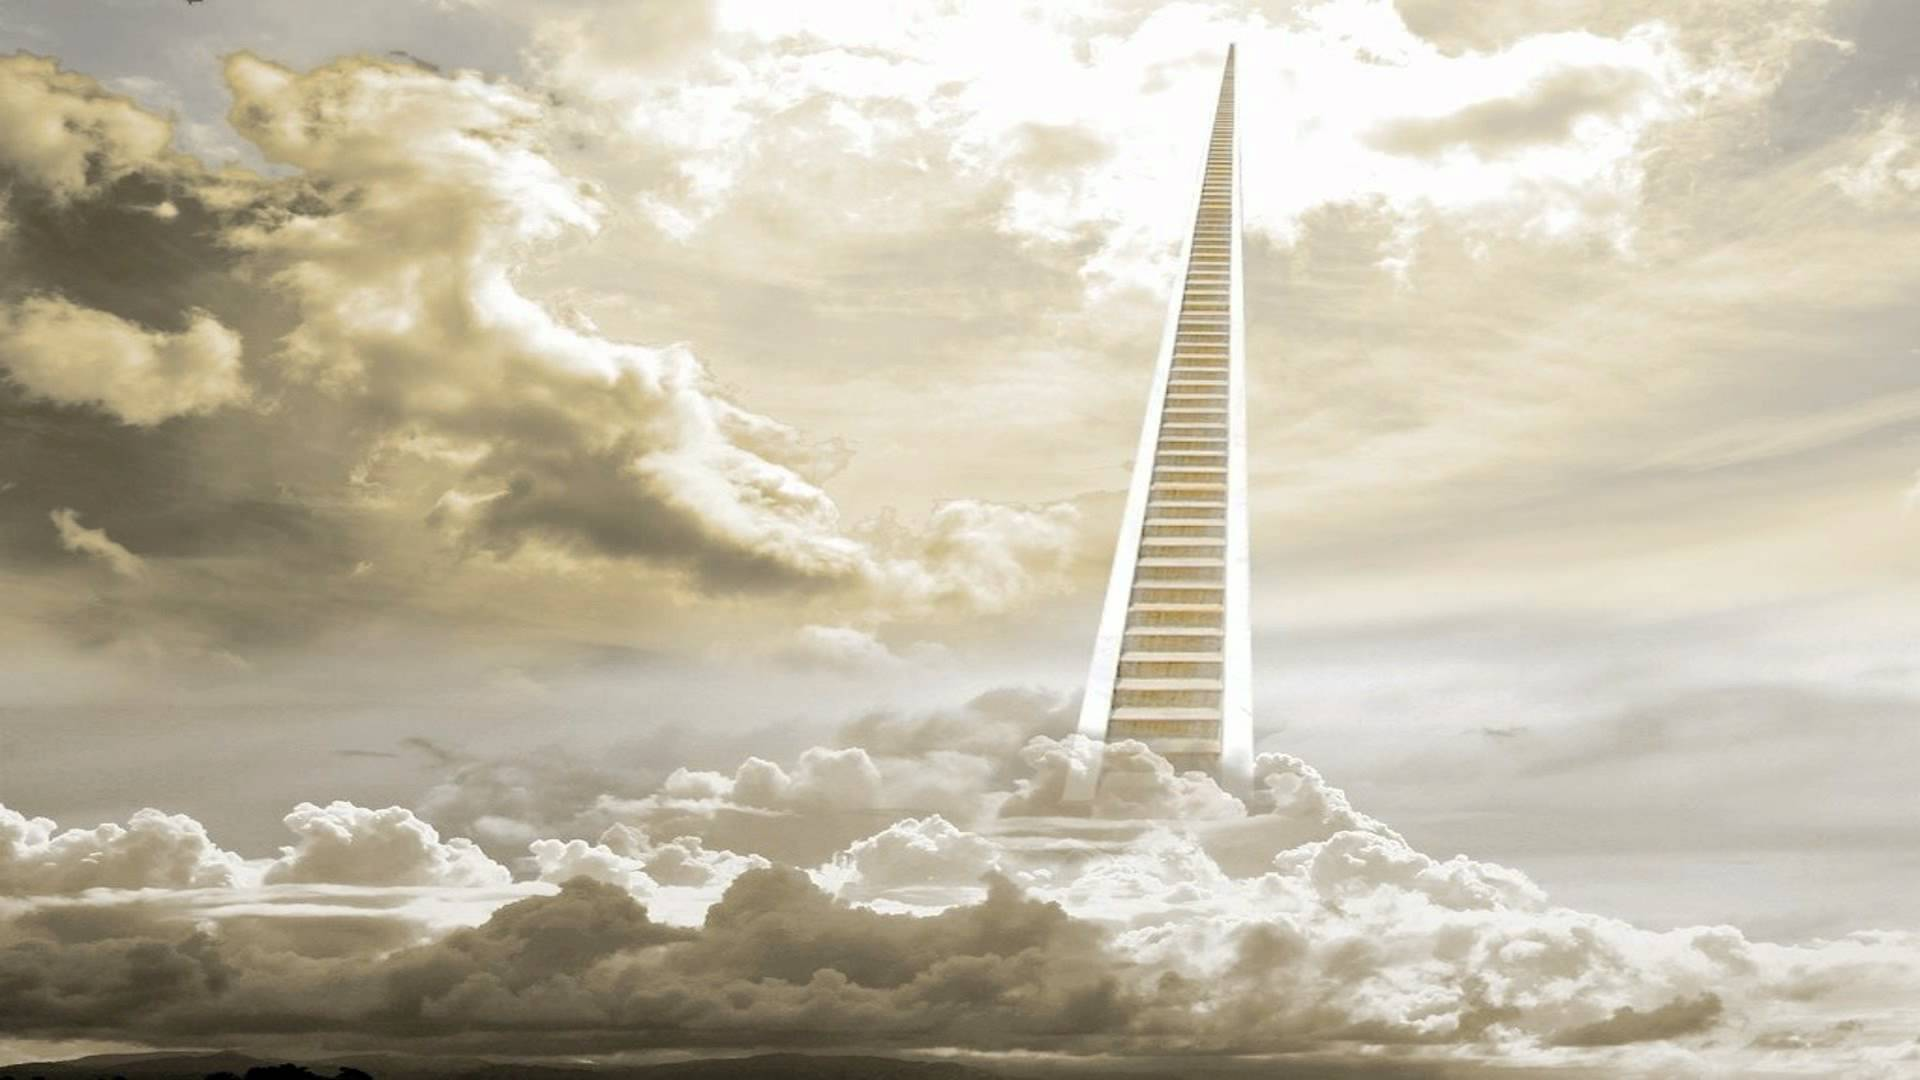 stairway to heaven If tears could build a stairway and memories a lane i would walk right up to heaven and bring you back again no farewell words were spoken no time to say goodbye you were gone before i knew it and only god knows why my heart still aches with sadness and s.